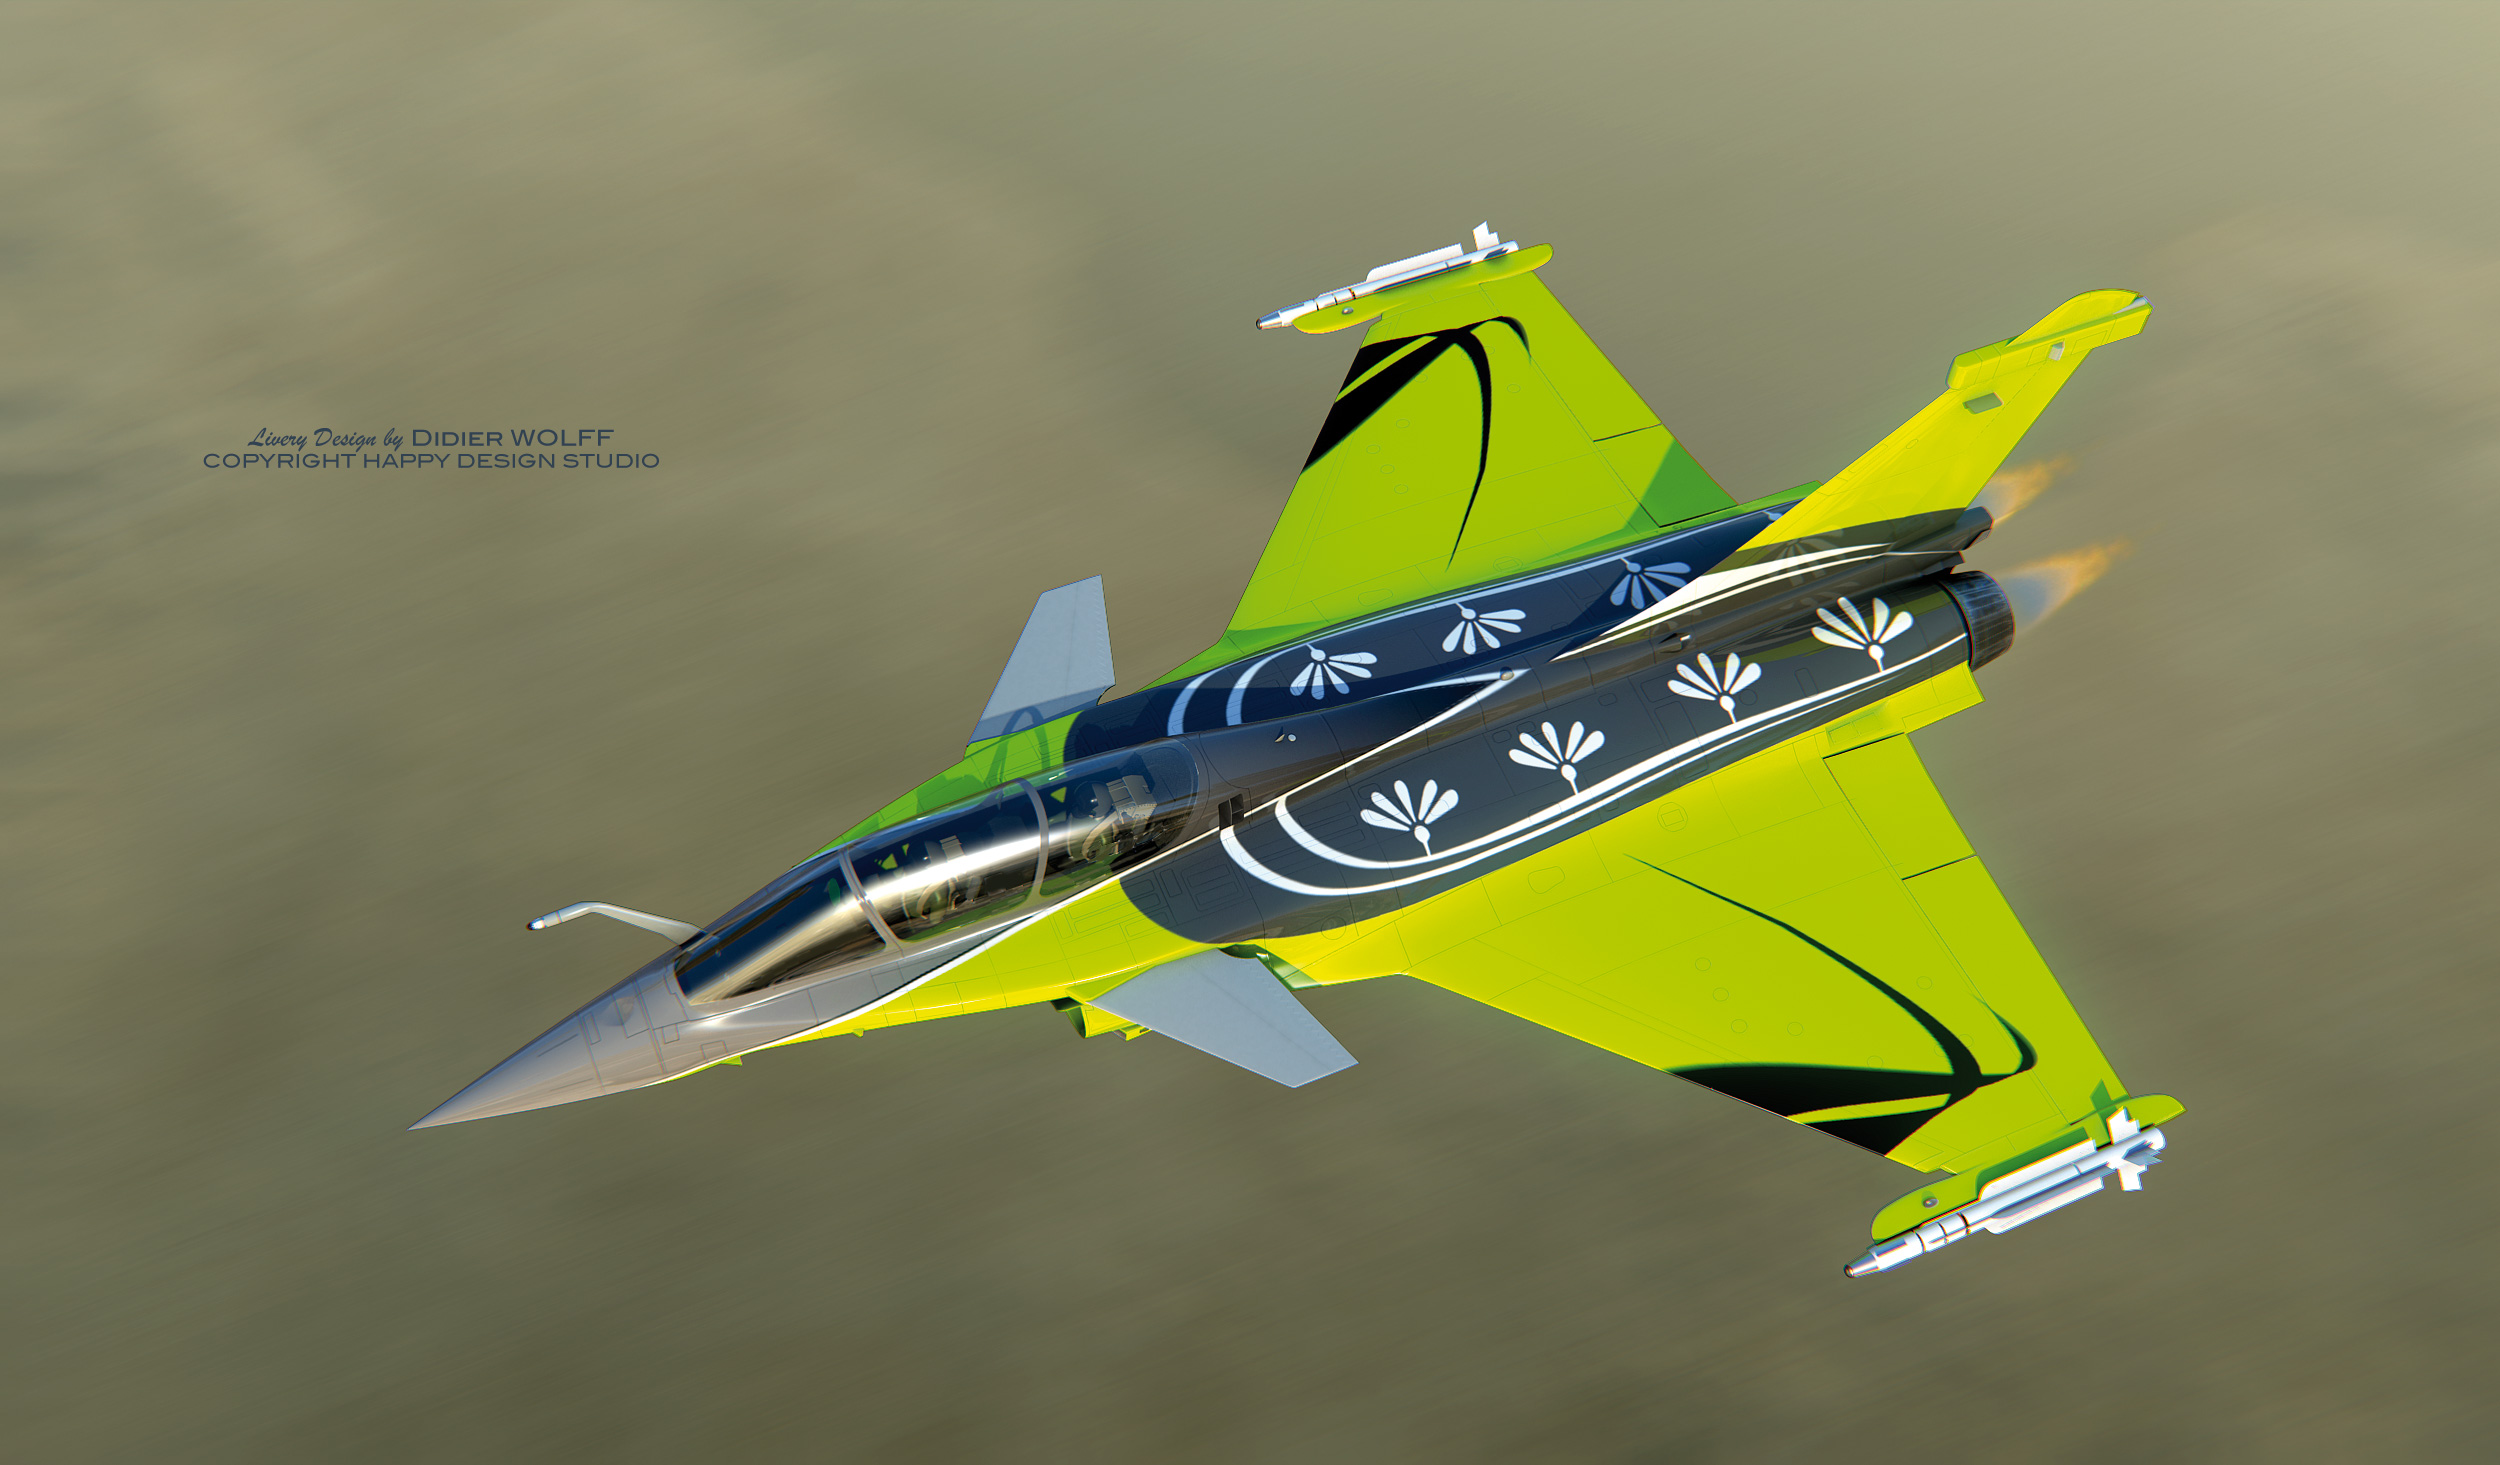 RAFALE LIVERY CONCEPT